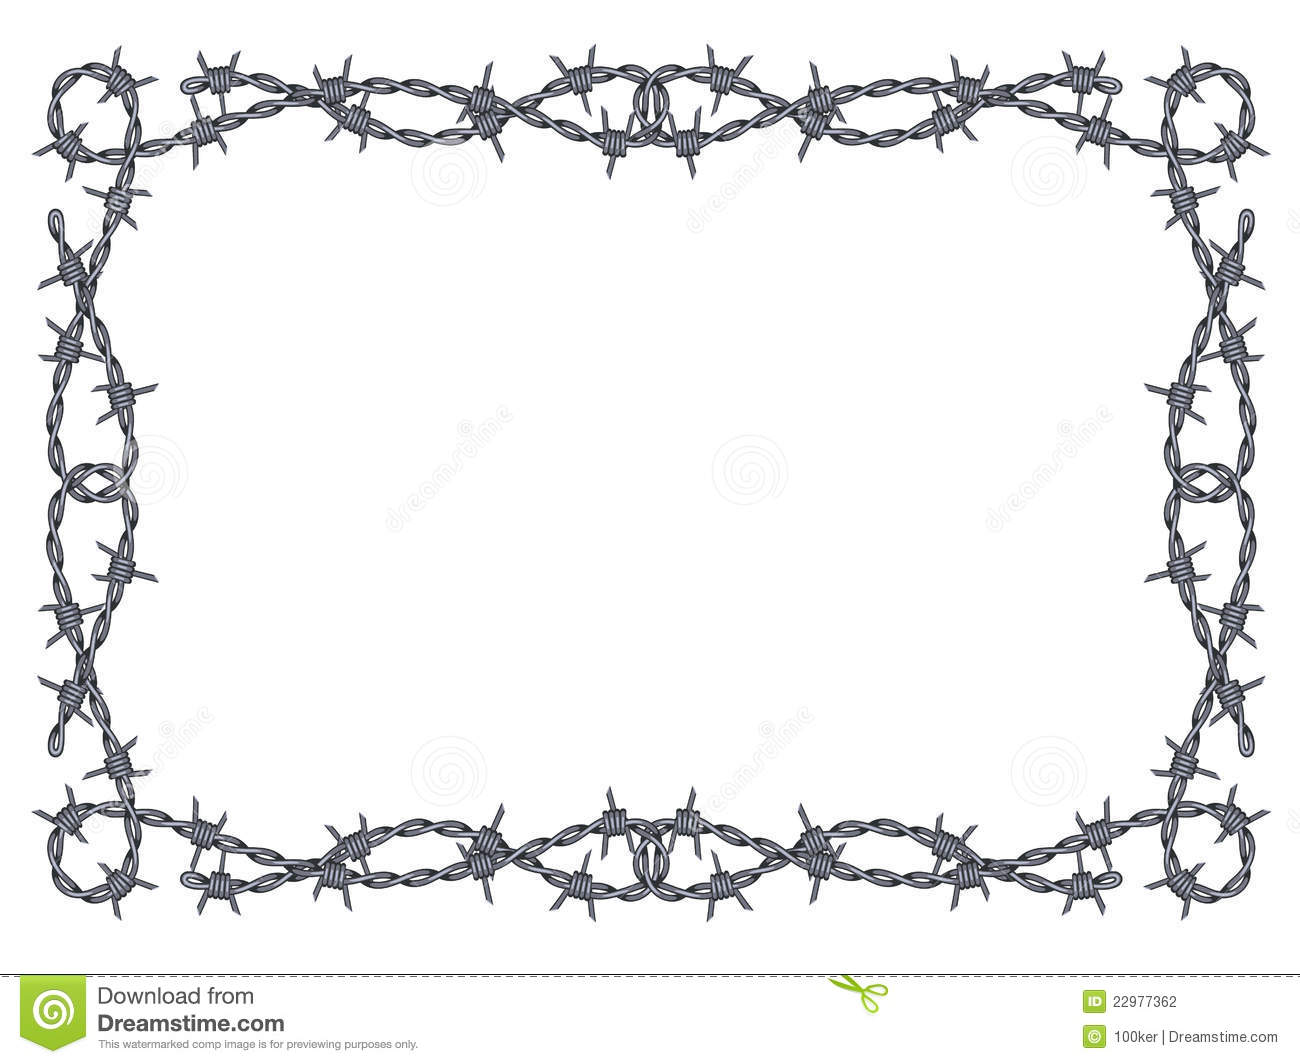 Barbed Wire Fence Png. Barbed Wire Fence Png P - Mathszone.co